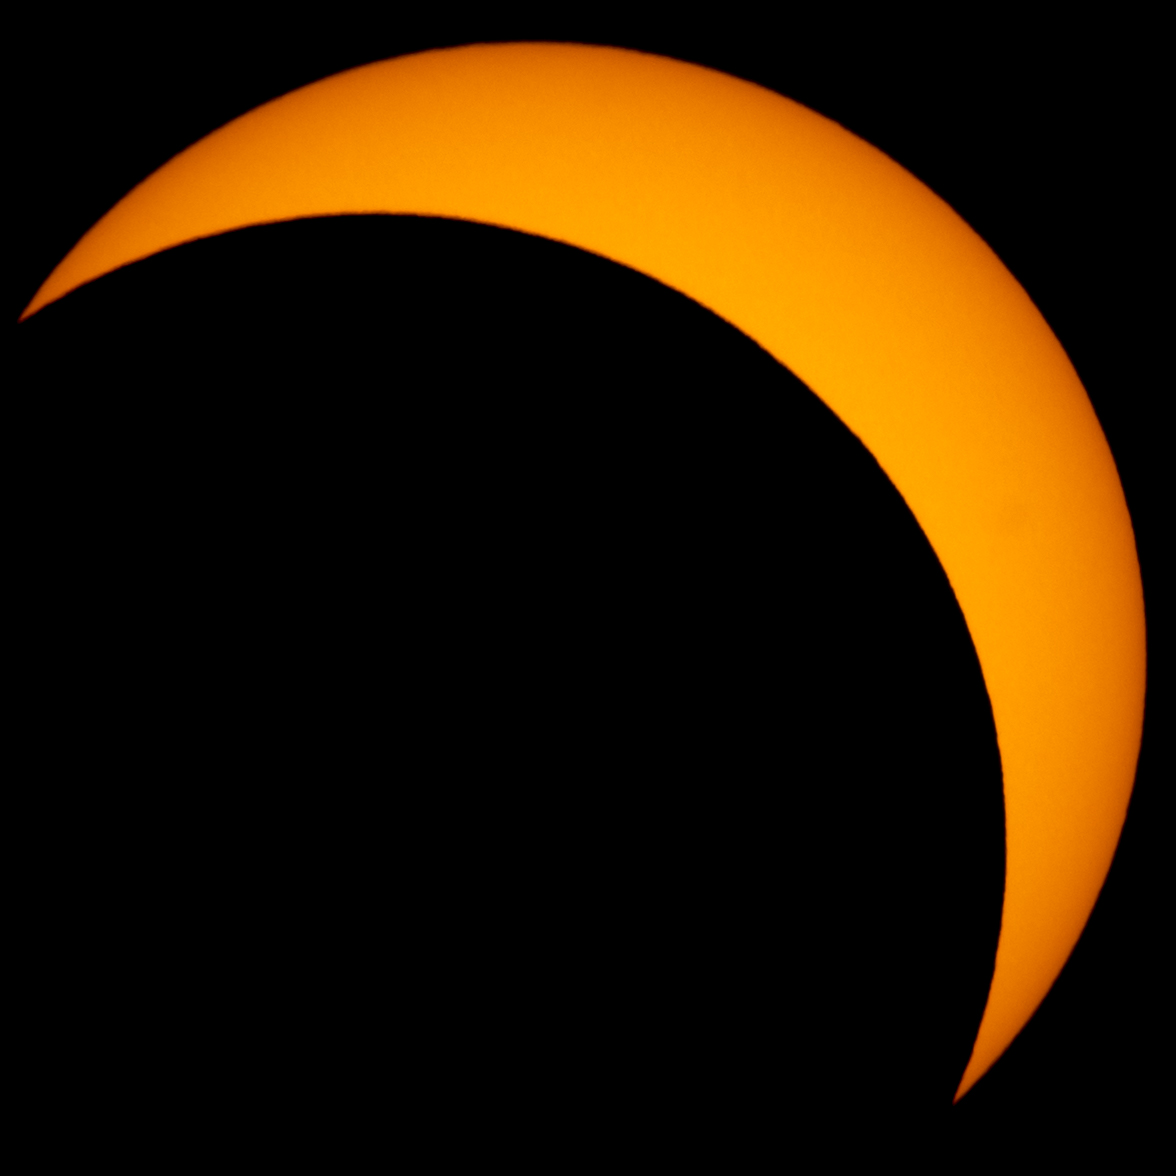 One of the six solar elements used in the composite image